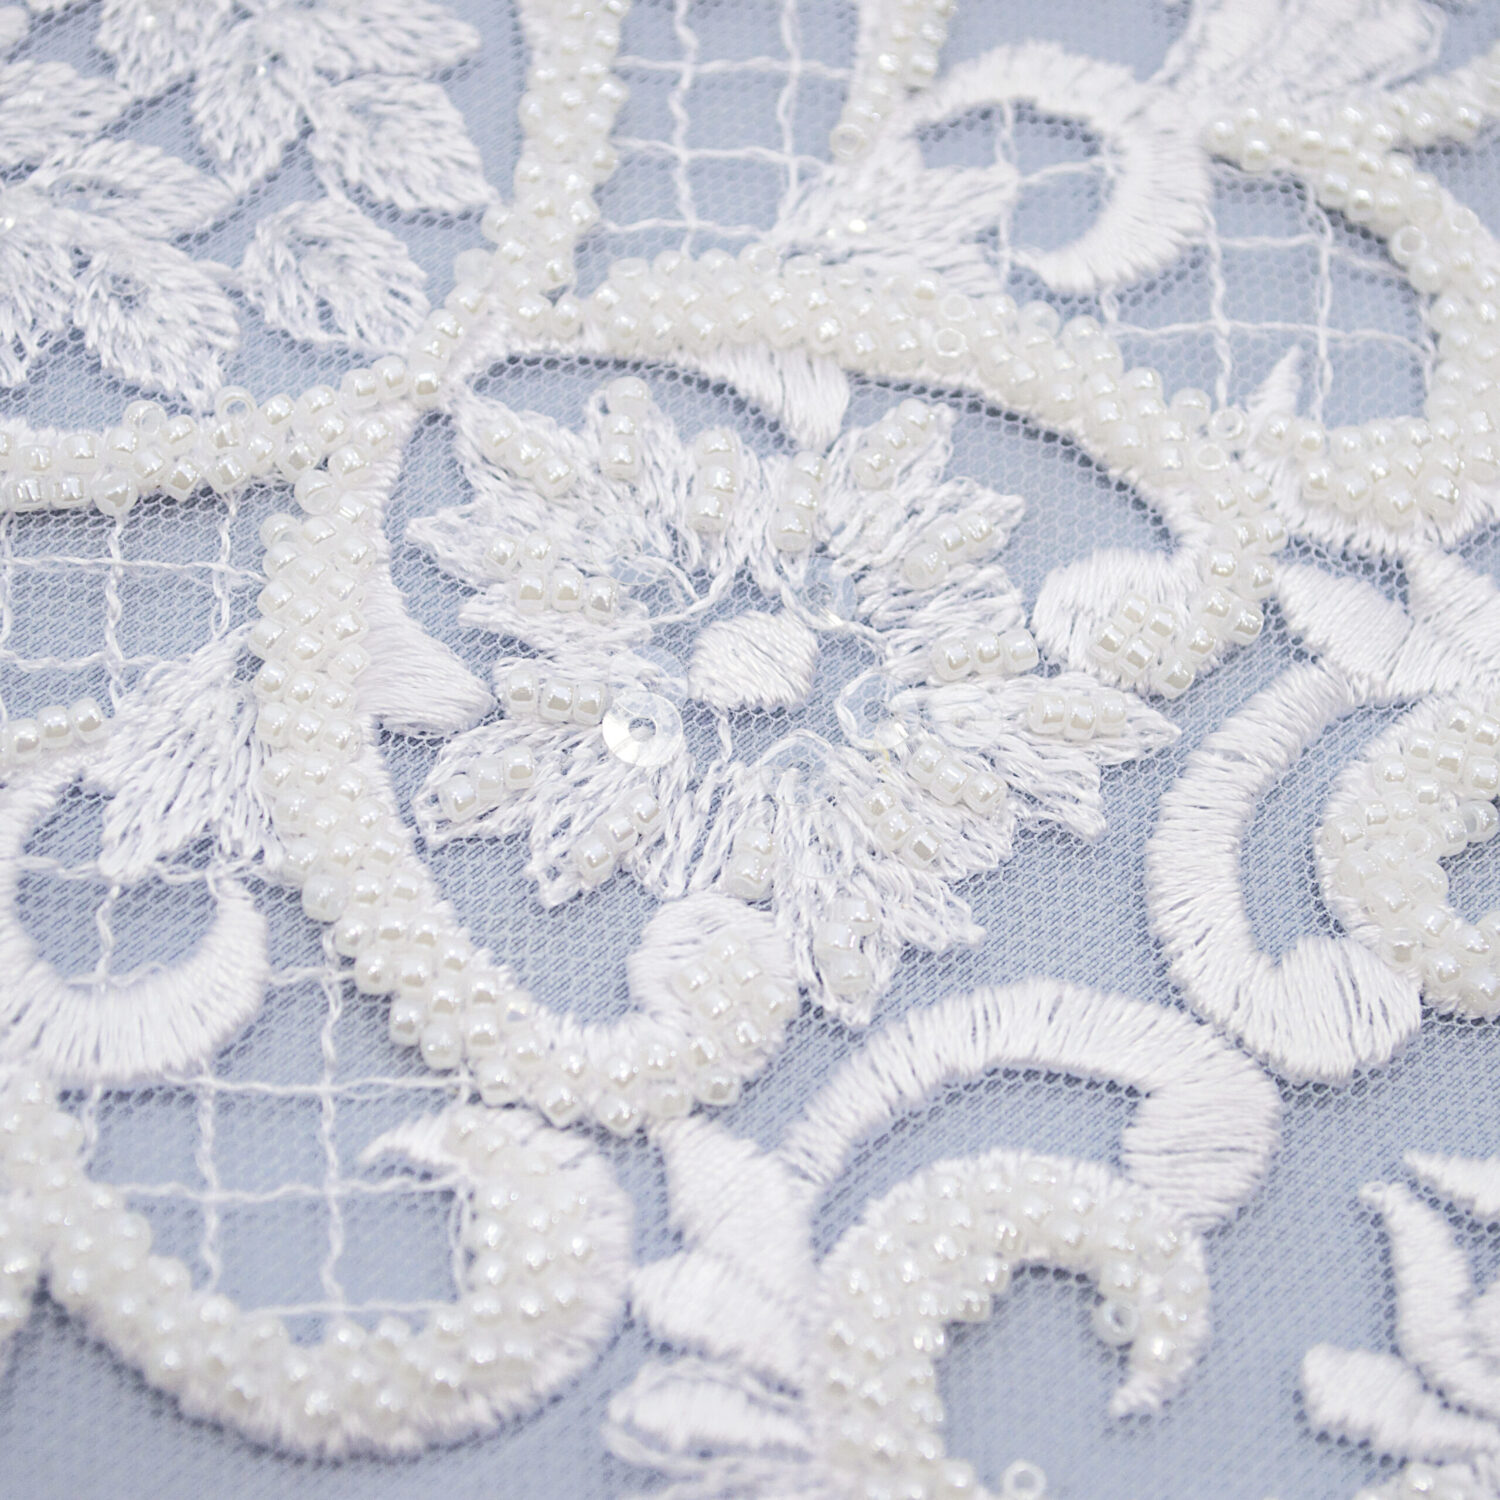 Embroidered lace trim AM13638-1QF2-N44